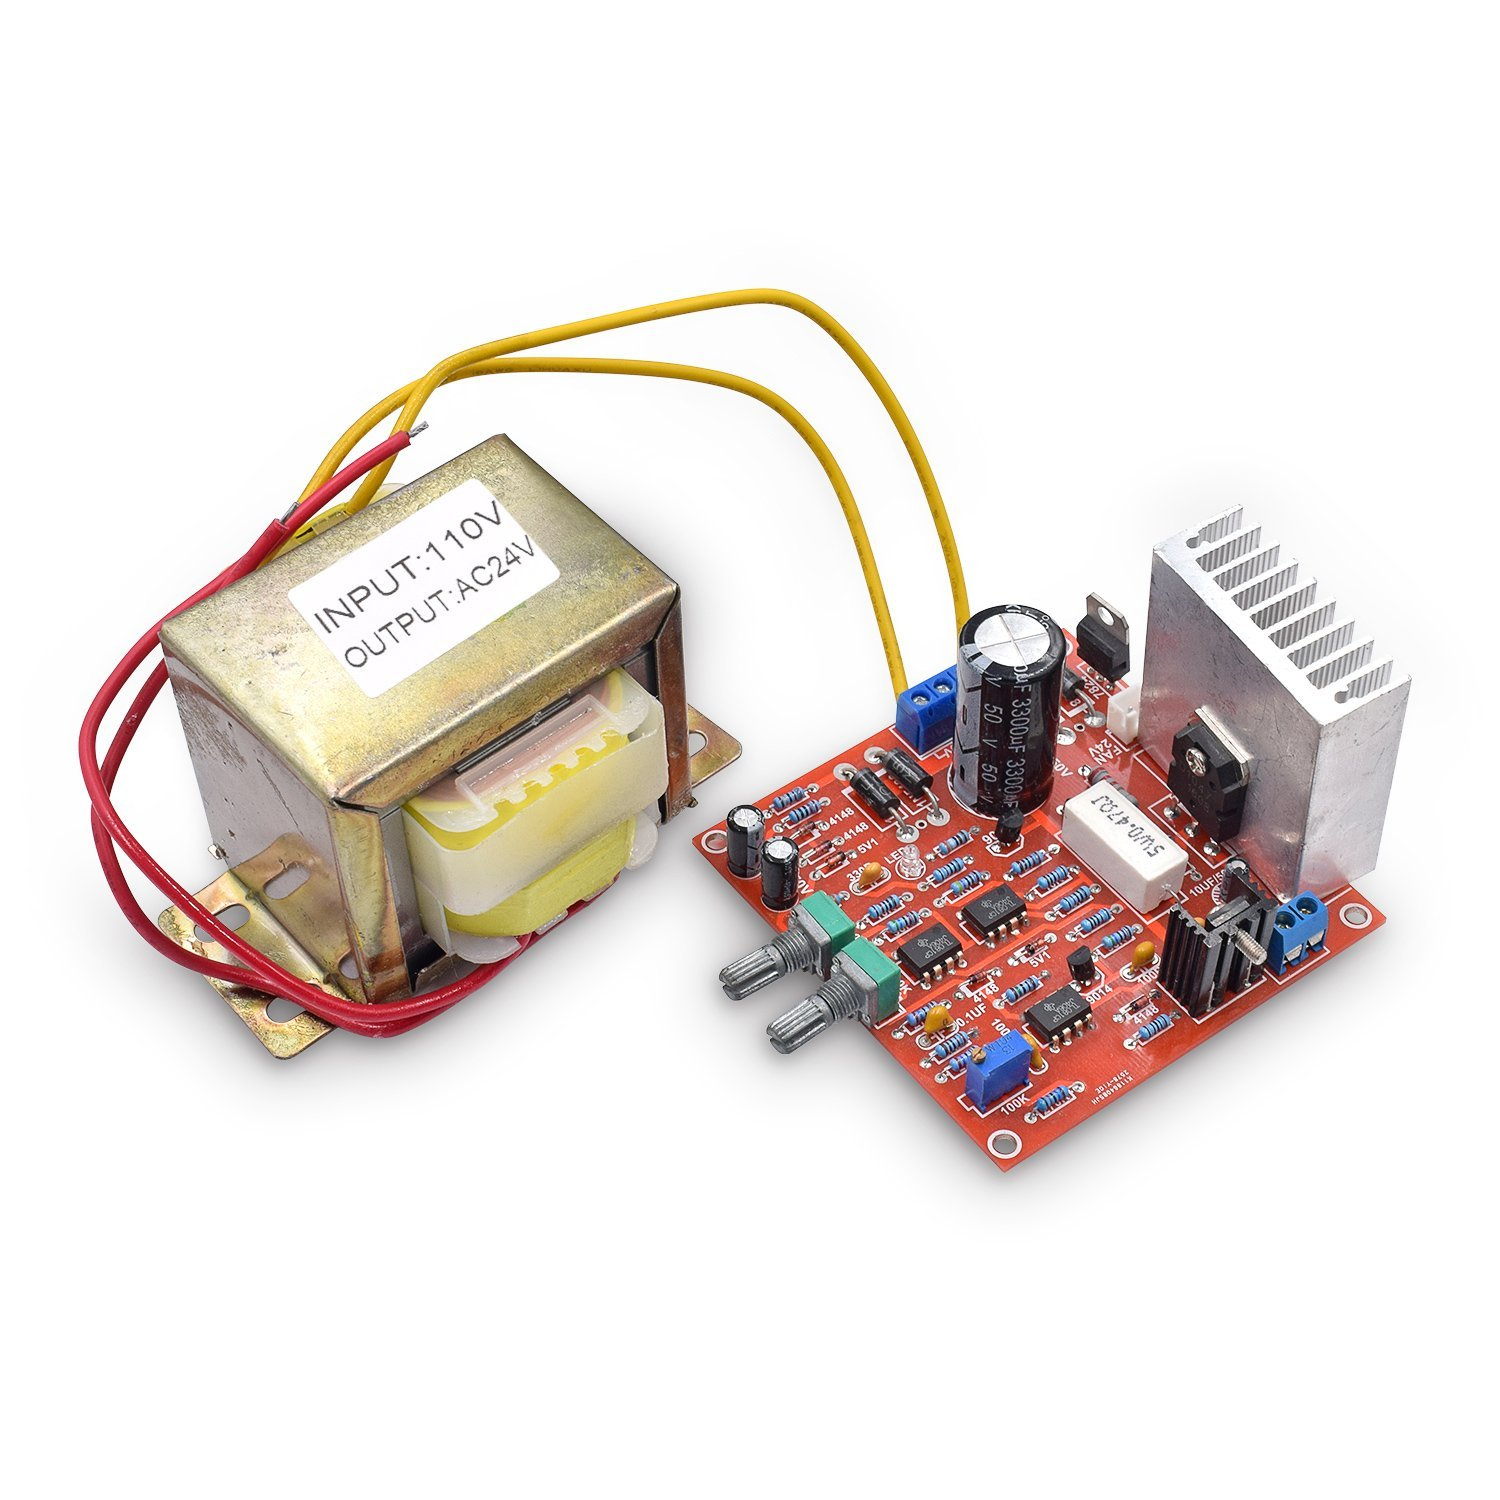 Cheap 0 30v Adjustable Power Supply Find 30v0 2a Voltage And Current Regulator Get Quotations Weikedz 2ma 3a Dc Regulated Diy Kit With Us